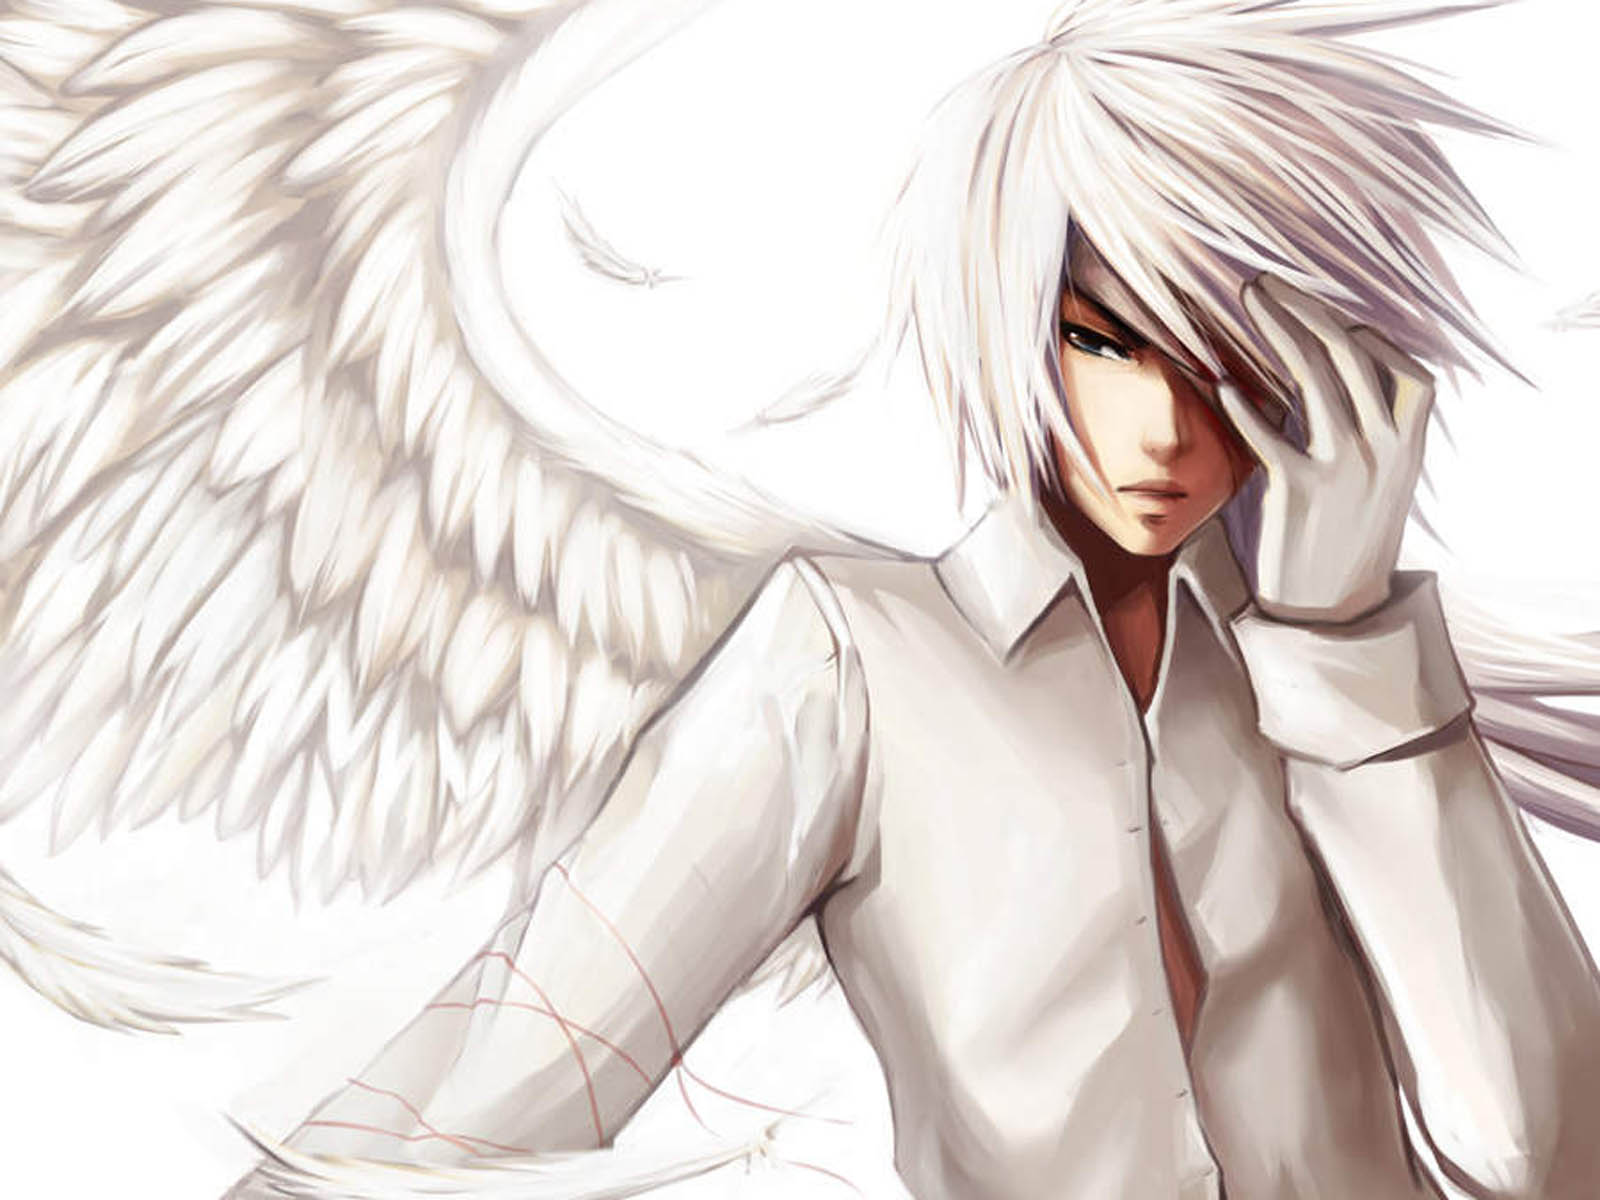 Hd wallpapers anime boys wallpapers - Anime guy wallpaper ...